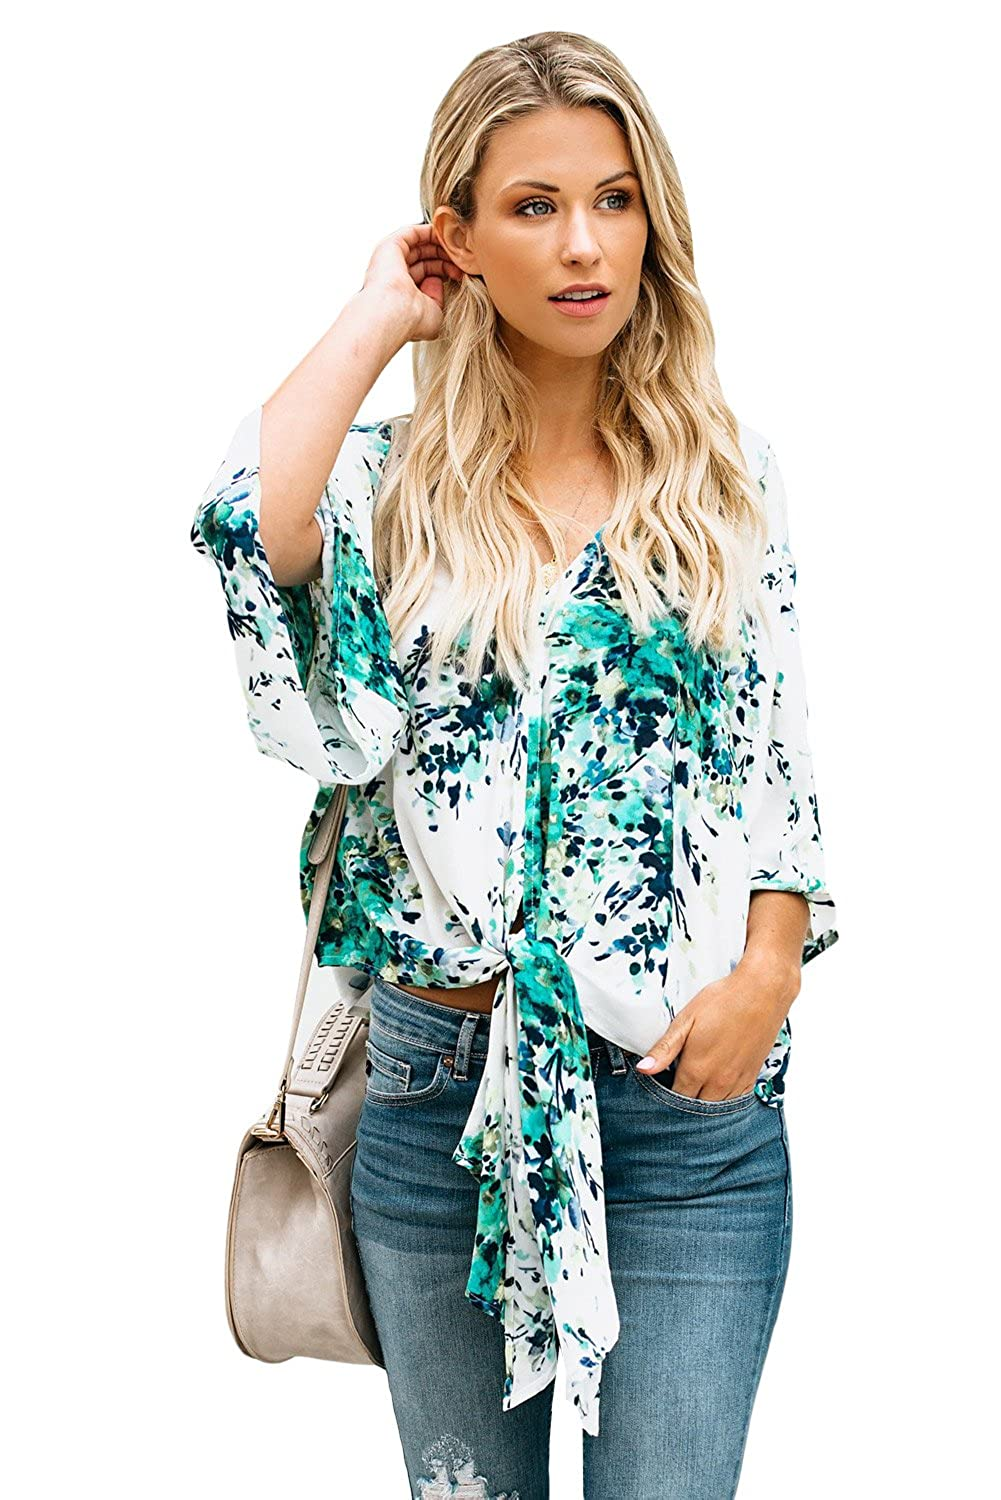 e38589a5 Floral Tie Front Knot Chiffon Blouses Summer Loose Fit Tops Sexy Deep V  Neck Short Bat Sleeve Shirt For Women Fashion 2018